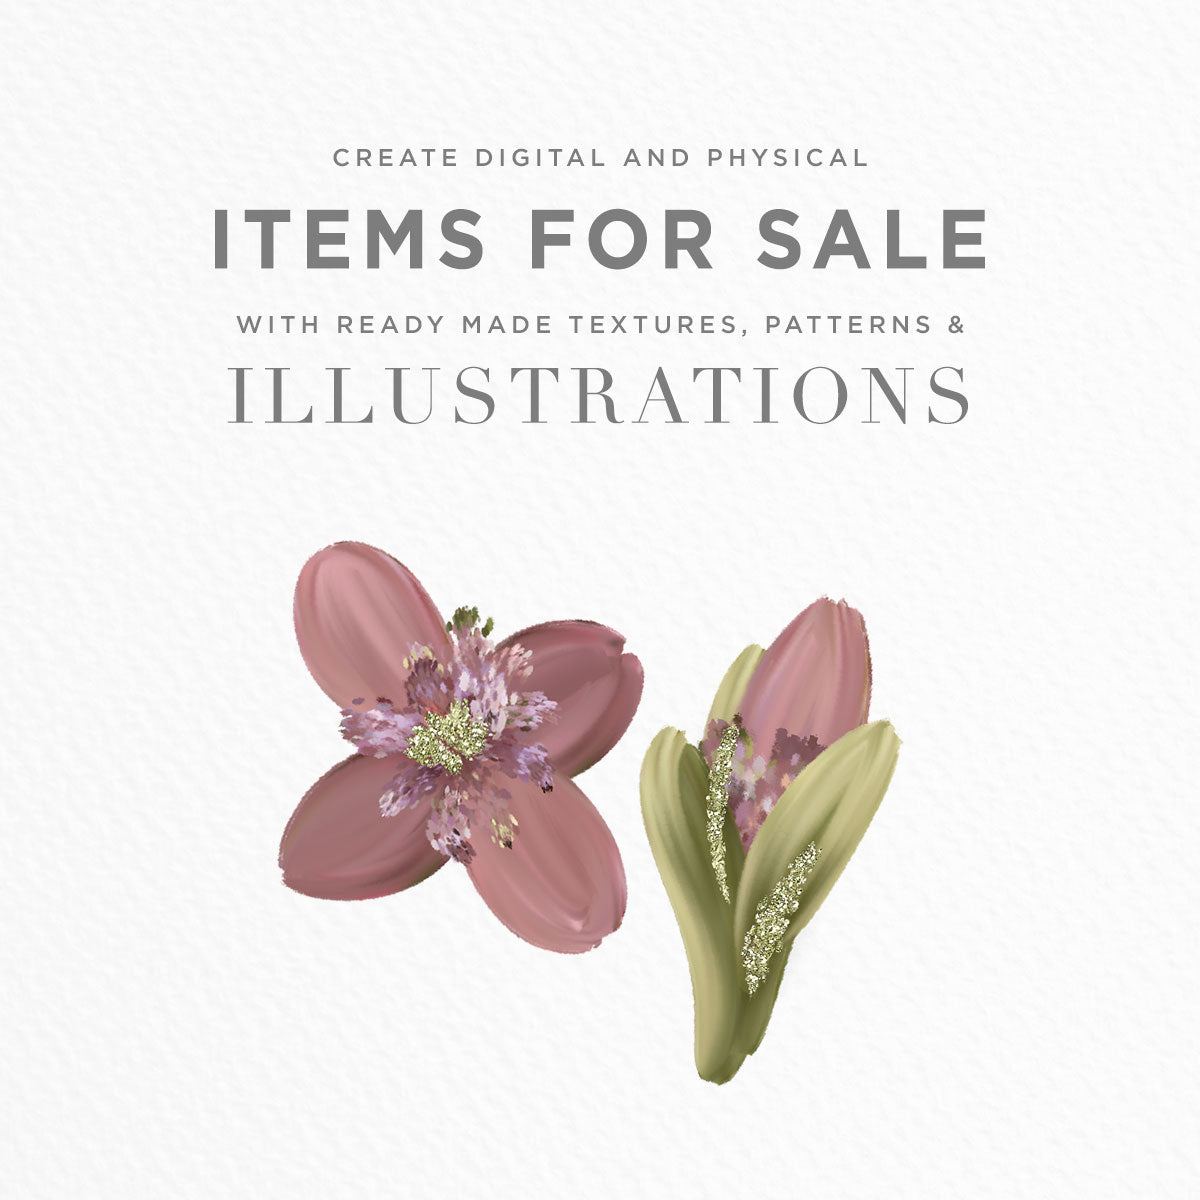 create items for sale using illustrations and patterns